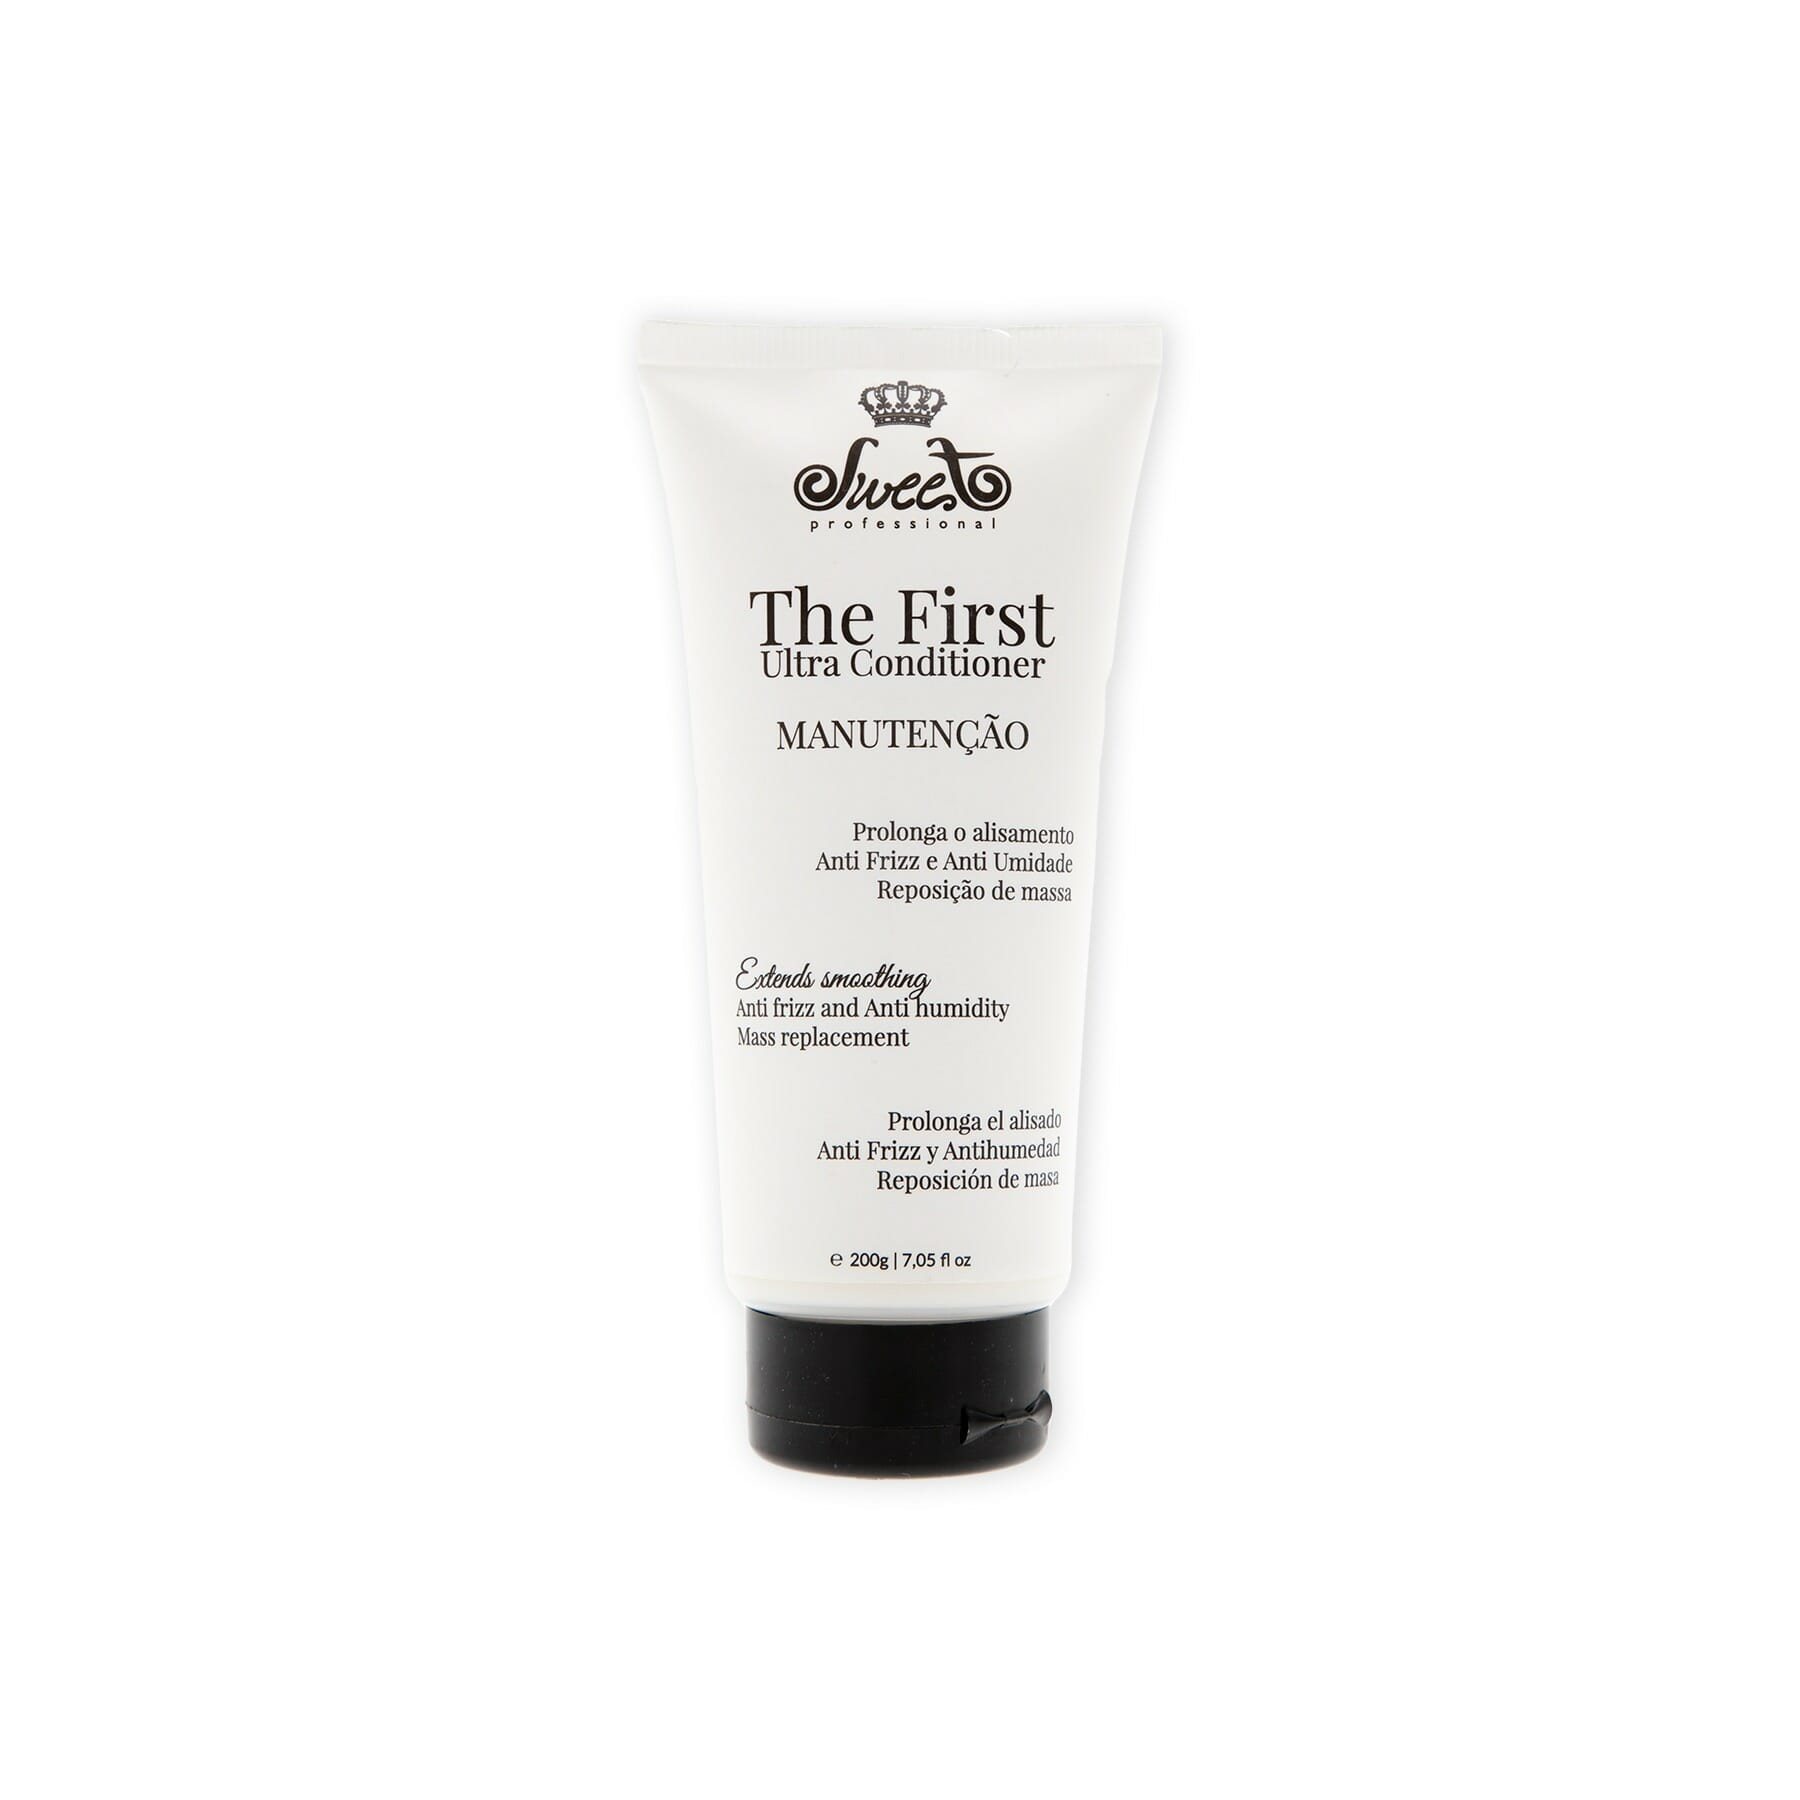 The First Homecare Masque